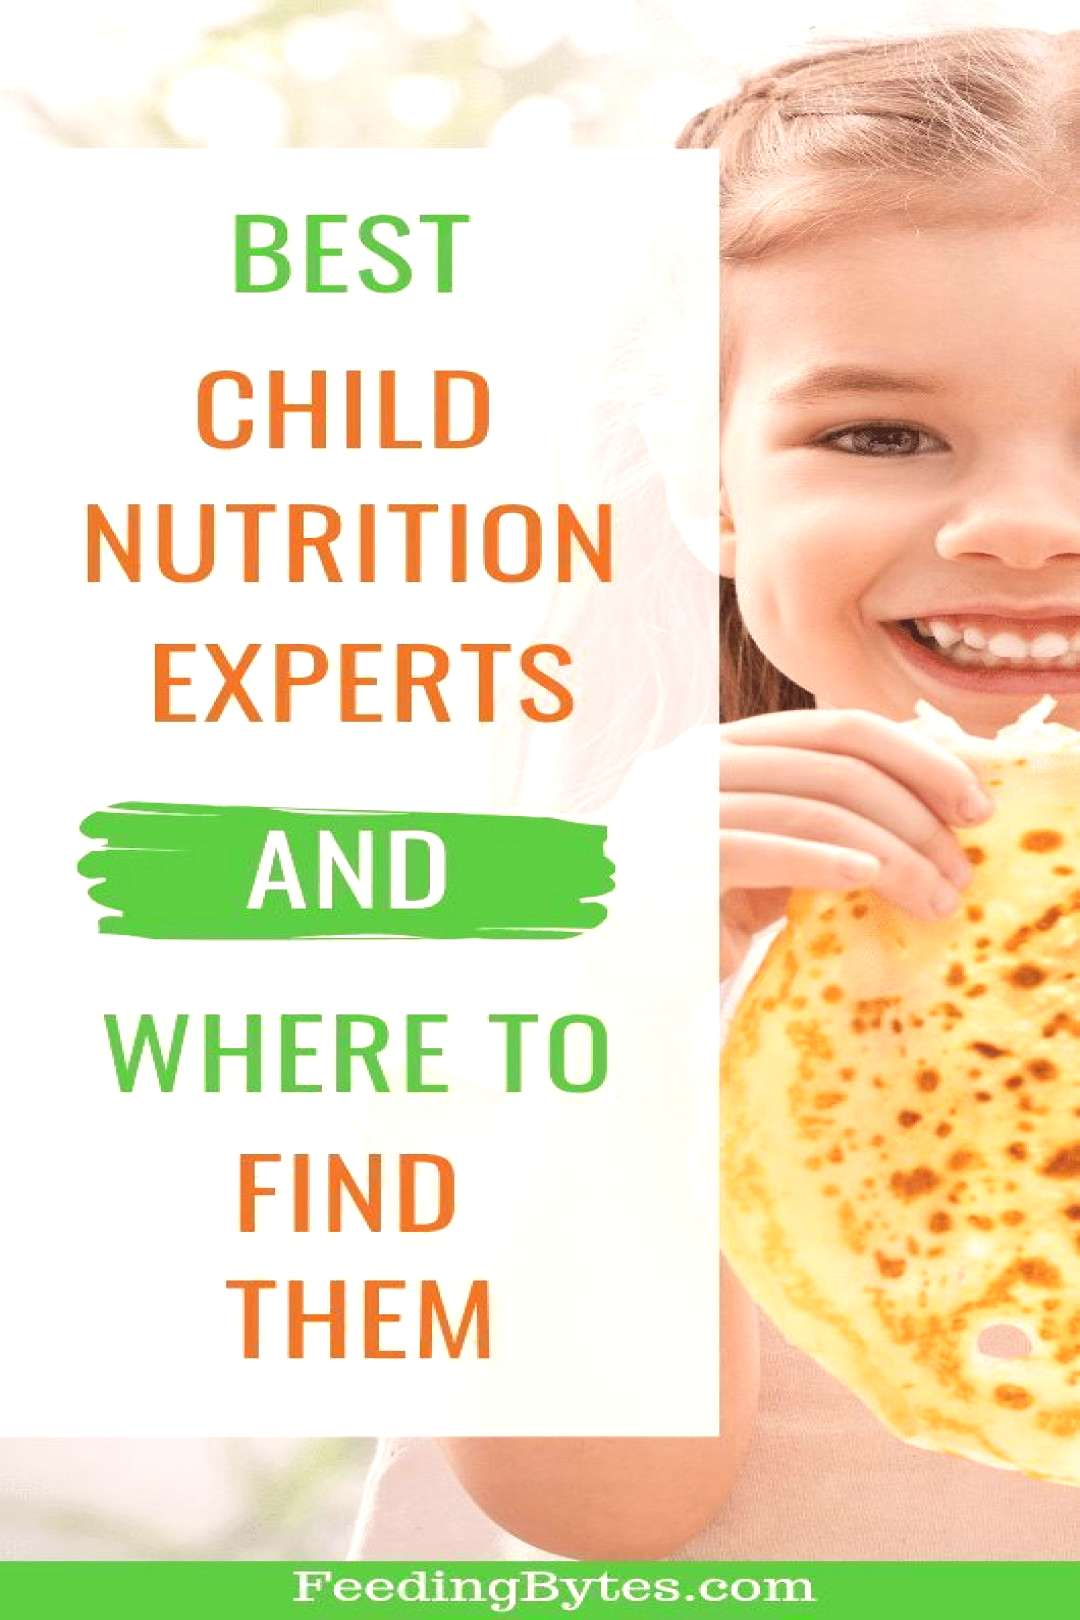 Child Nutrition Experts How They Can Help Your Family For paren... Child Nutrition Experts How Th